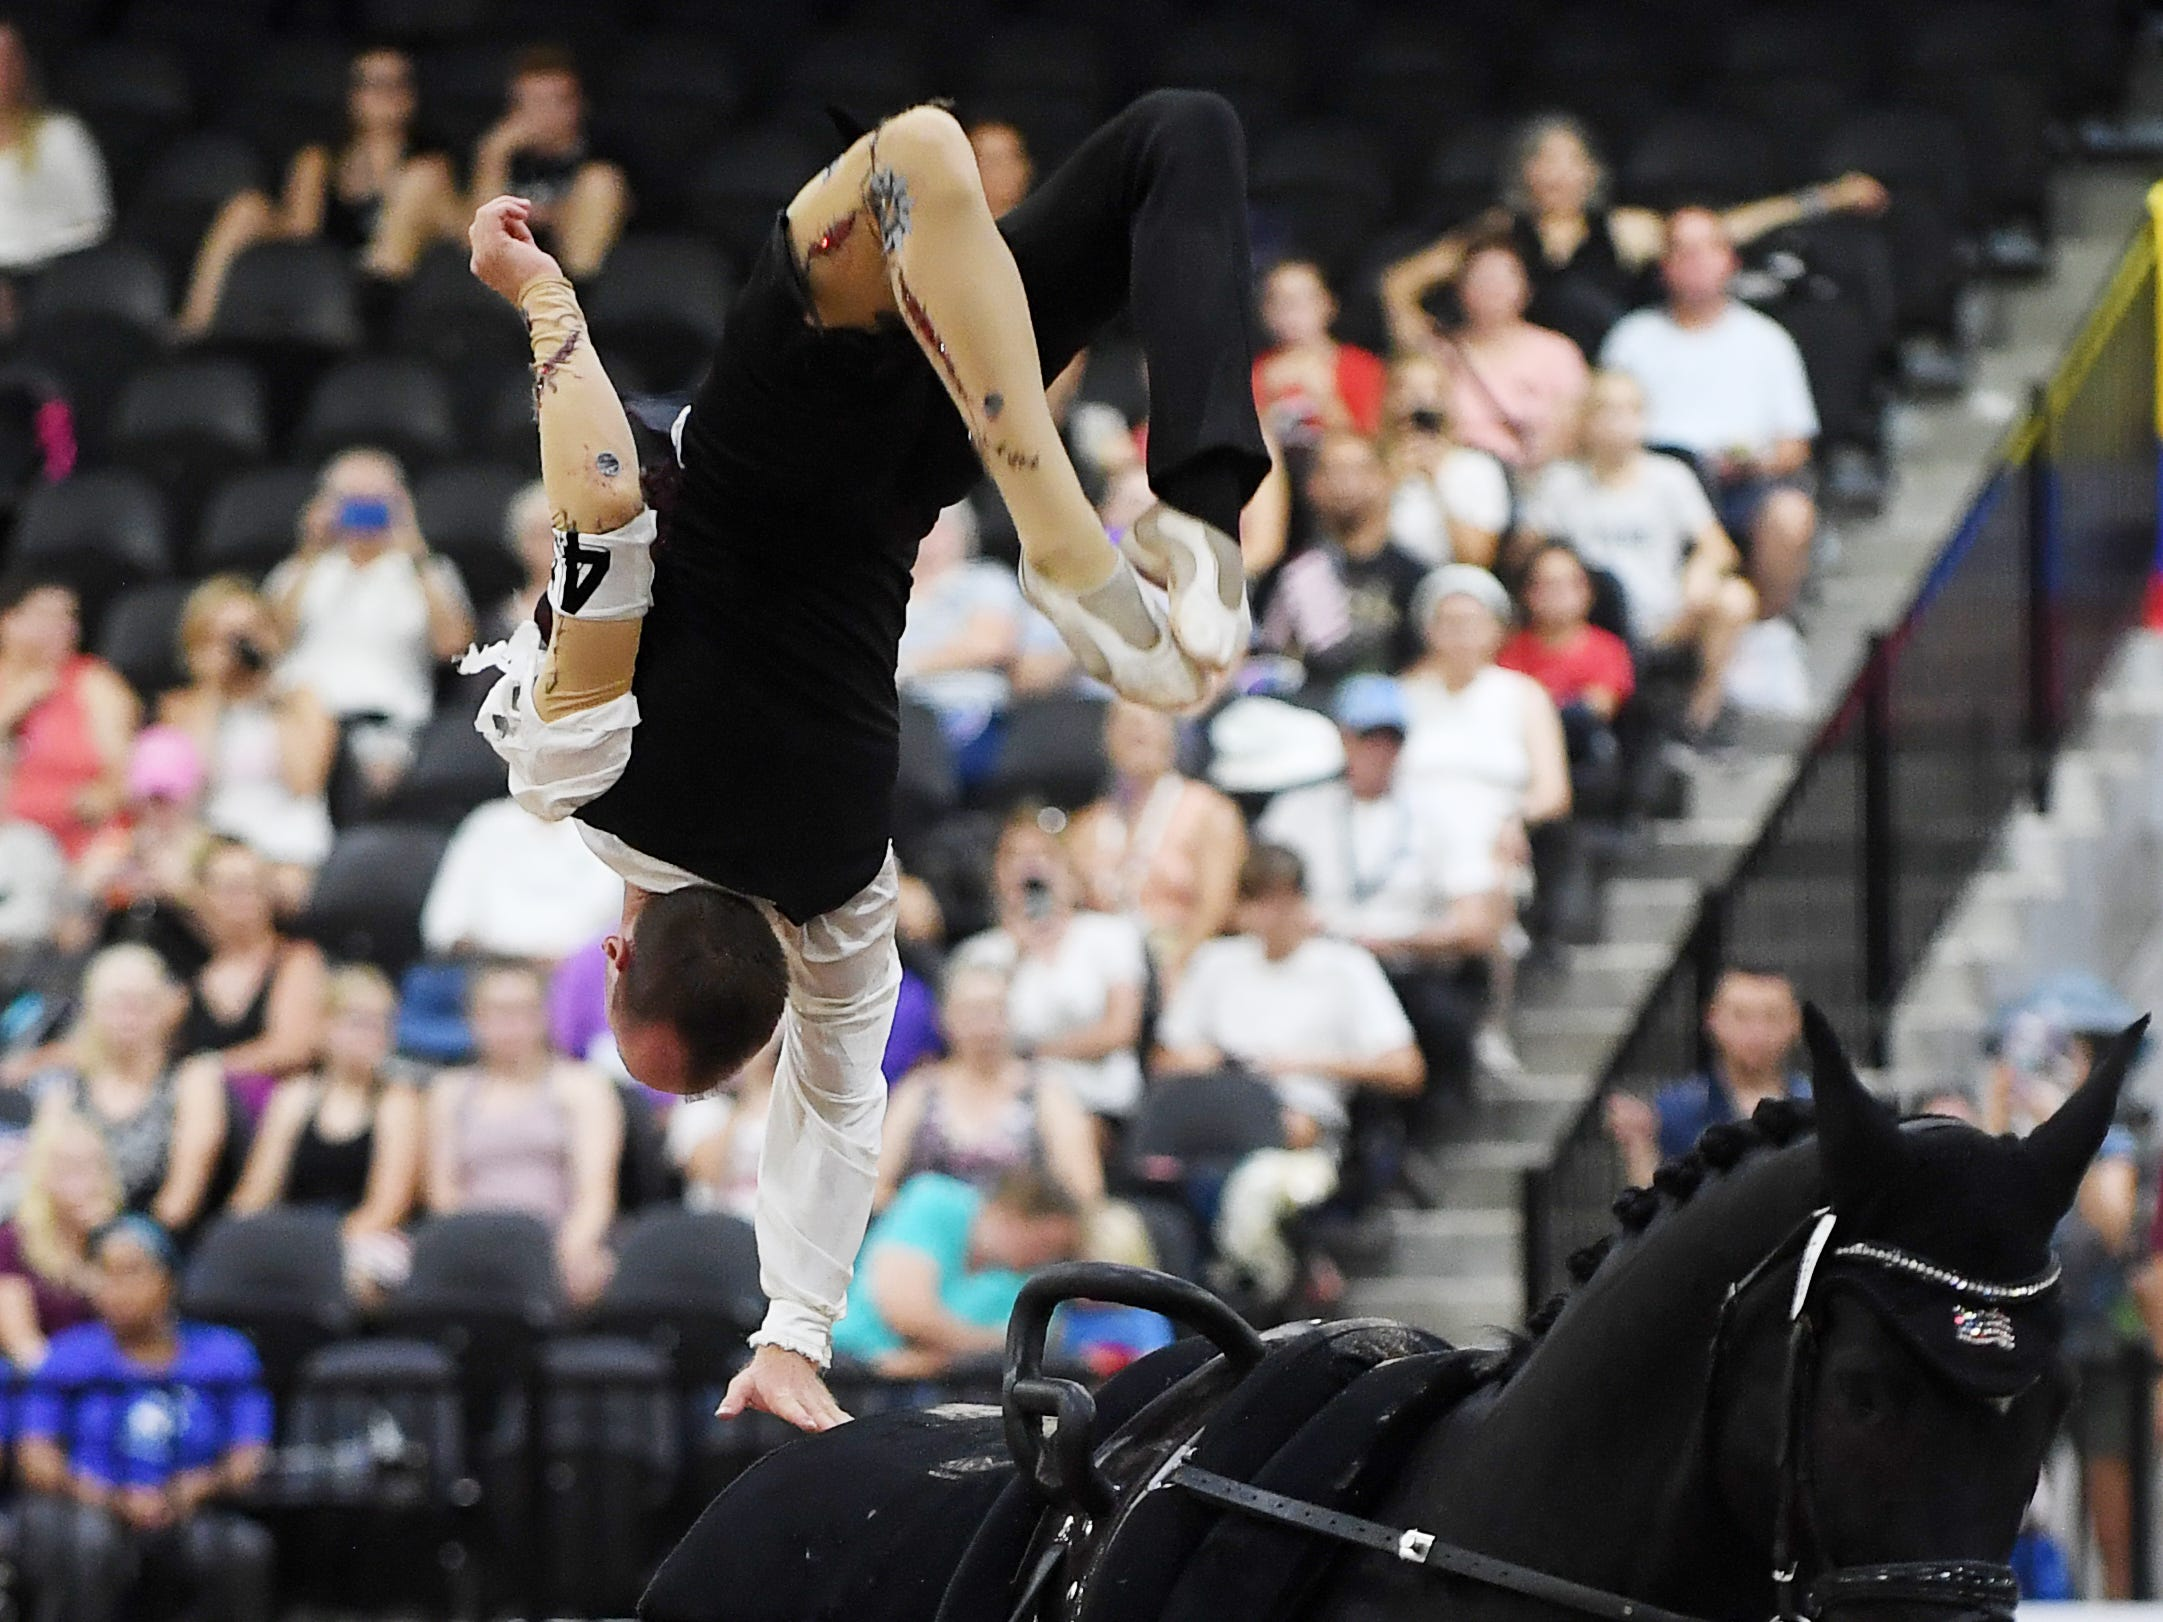 Kristian Roberts competes with horse Sir Charles in vaulting for the United States at the World Equestrian Games Sept. 19, 2018.